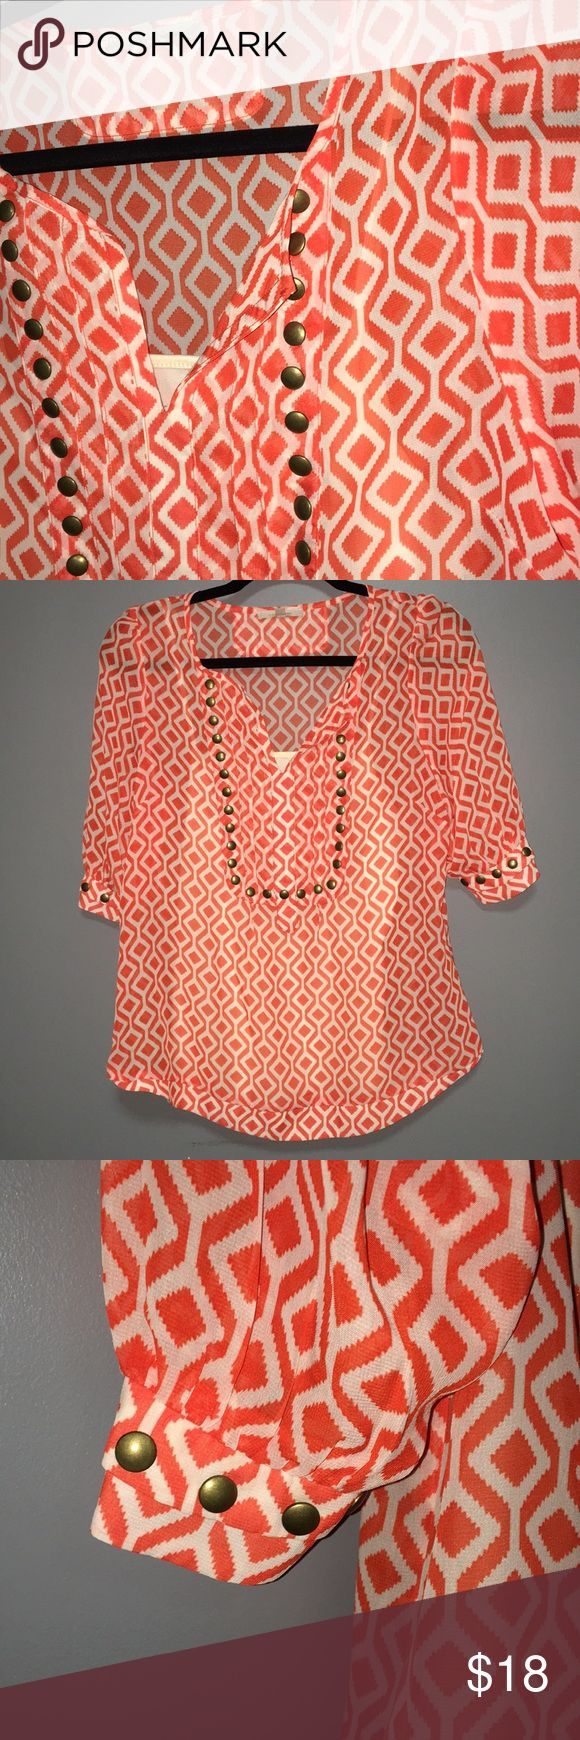 "41 Hawthorn Moni Geo Studded sheer blouse Size small 41 Hawthorn sheer blouse from stitch fix. Excellent condition. Geometric pattern in orange and white with a bib front lined by brass buttons.  Sleeves feature brass buttons.  Includes off white camisole attached to inside of shirt.   100% polyester. Hand wash cold tumble dry low.   Armpit to armpit: 18"" Shoulder to hem: 25.5""  All measurements are approximate.  T145 Tops Blouses"